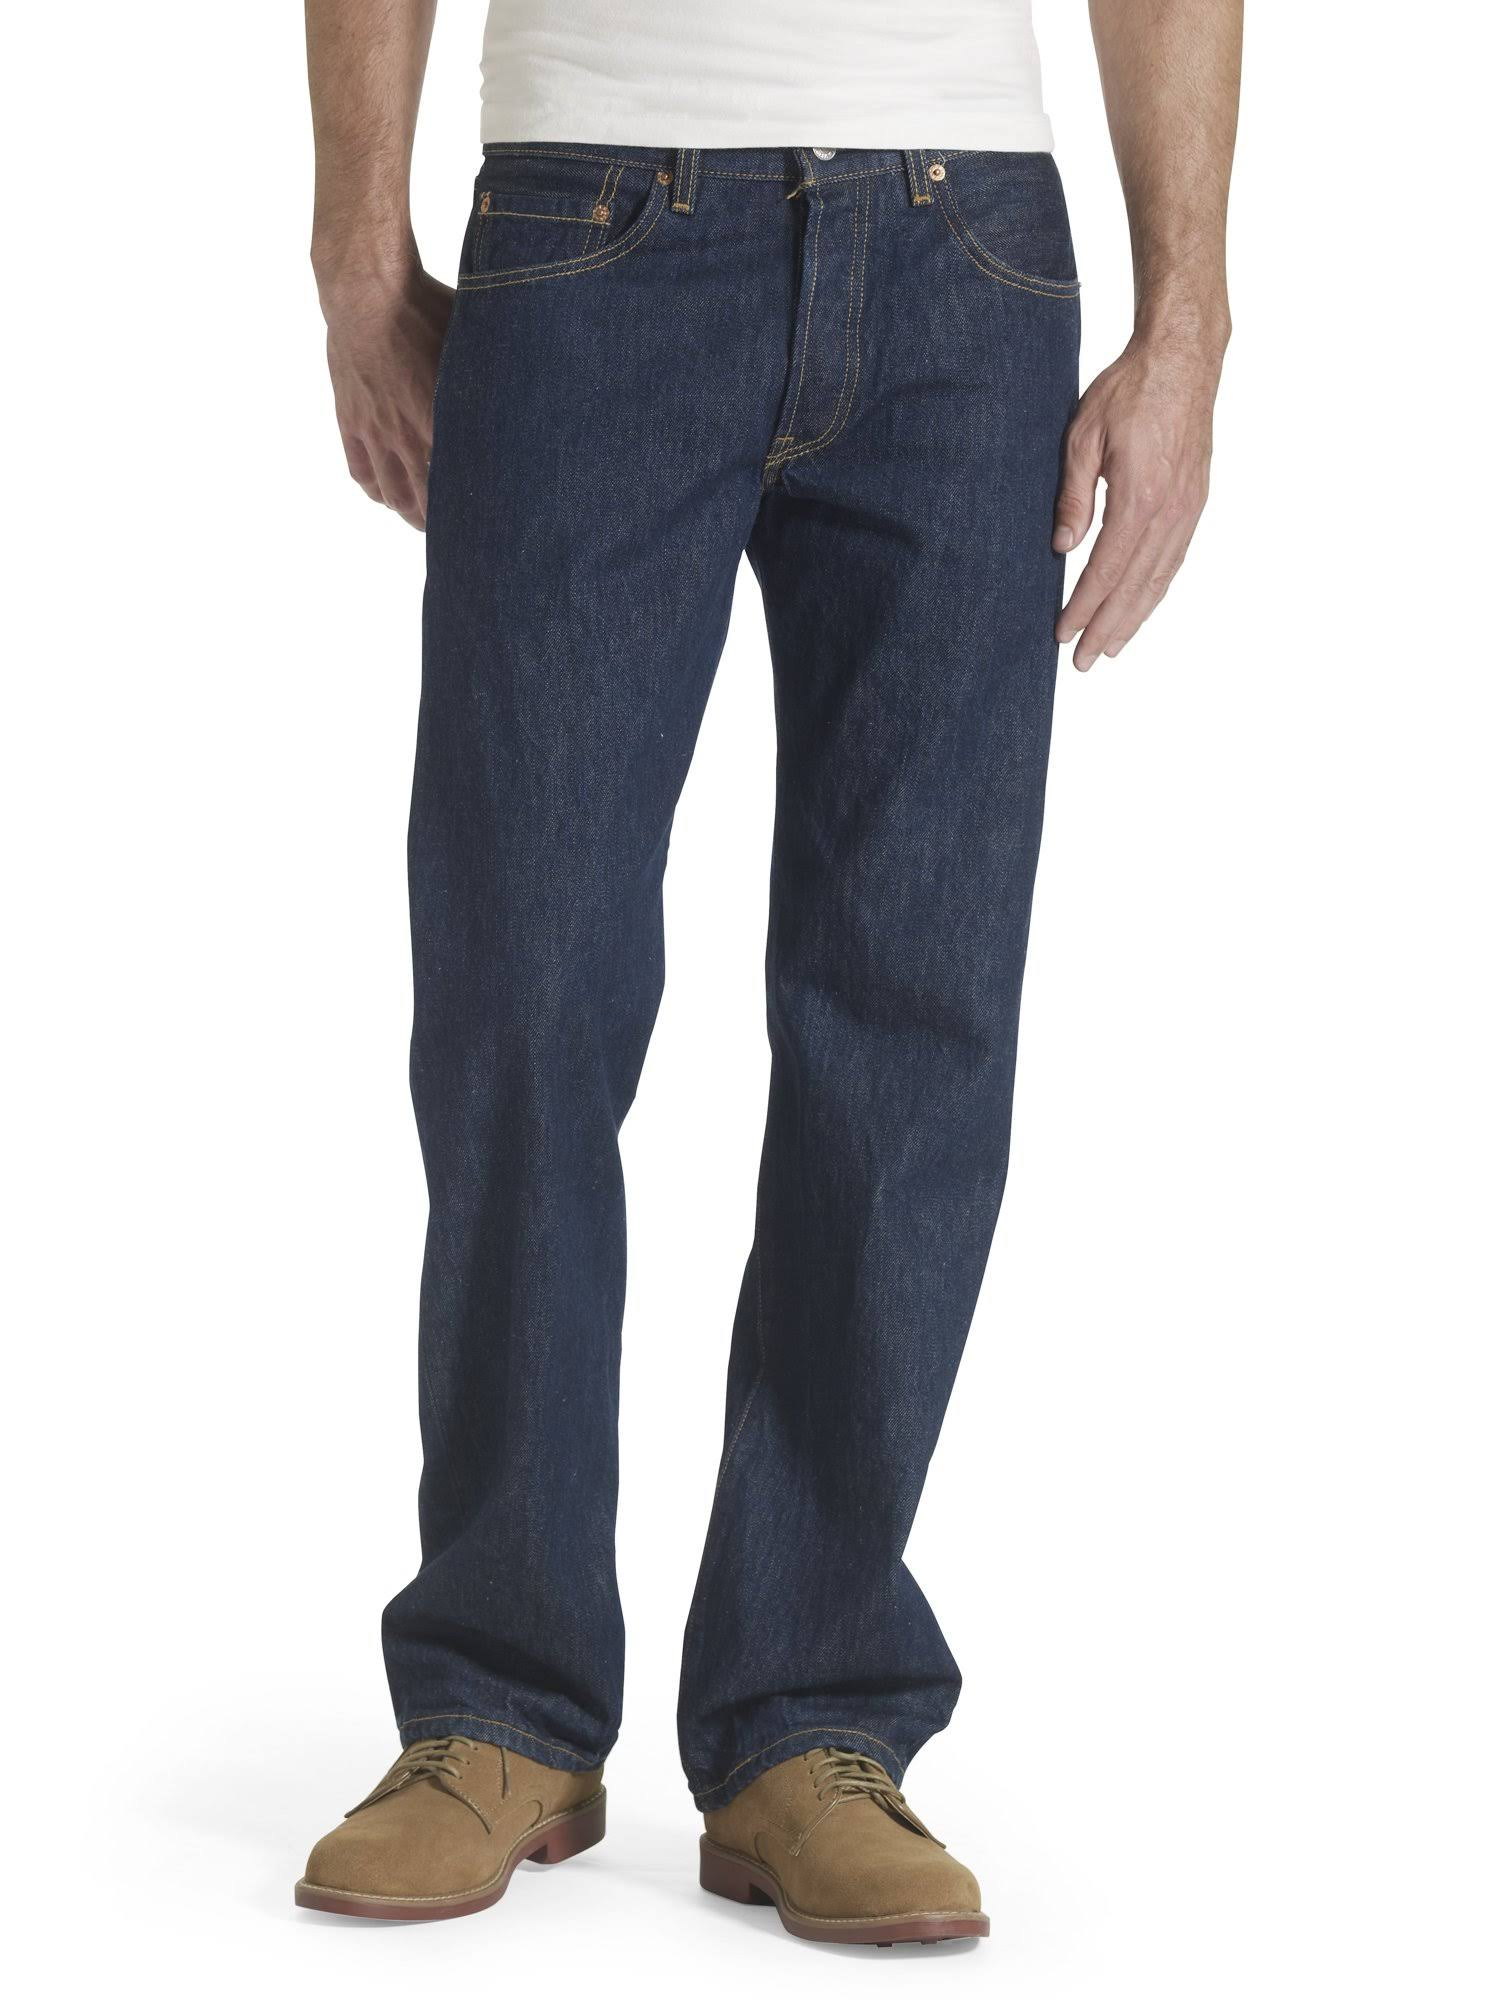 "Levi's Men's 501 Original-Fit Jean - Rinse, 29""x30"""